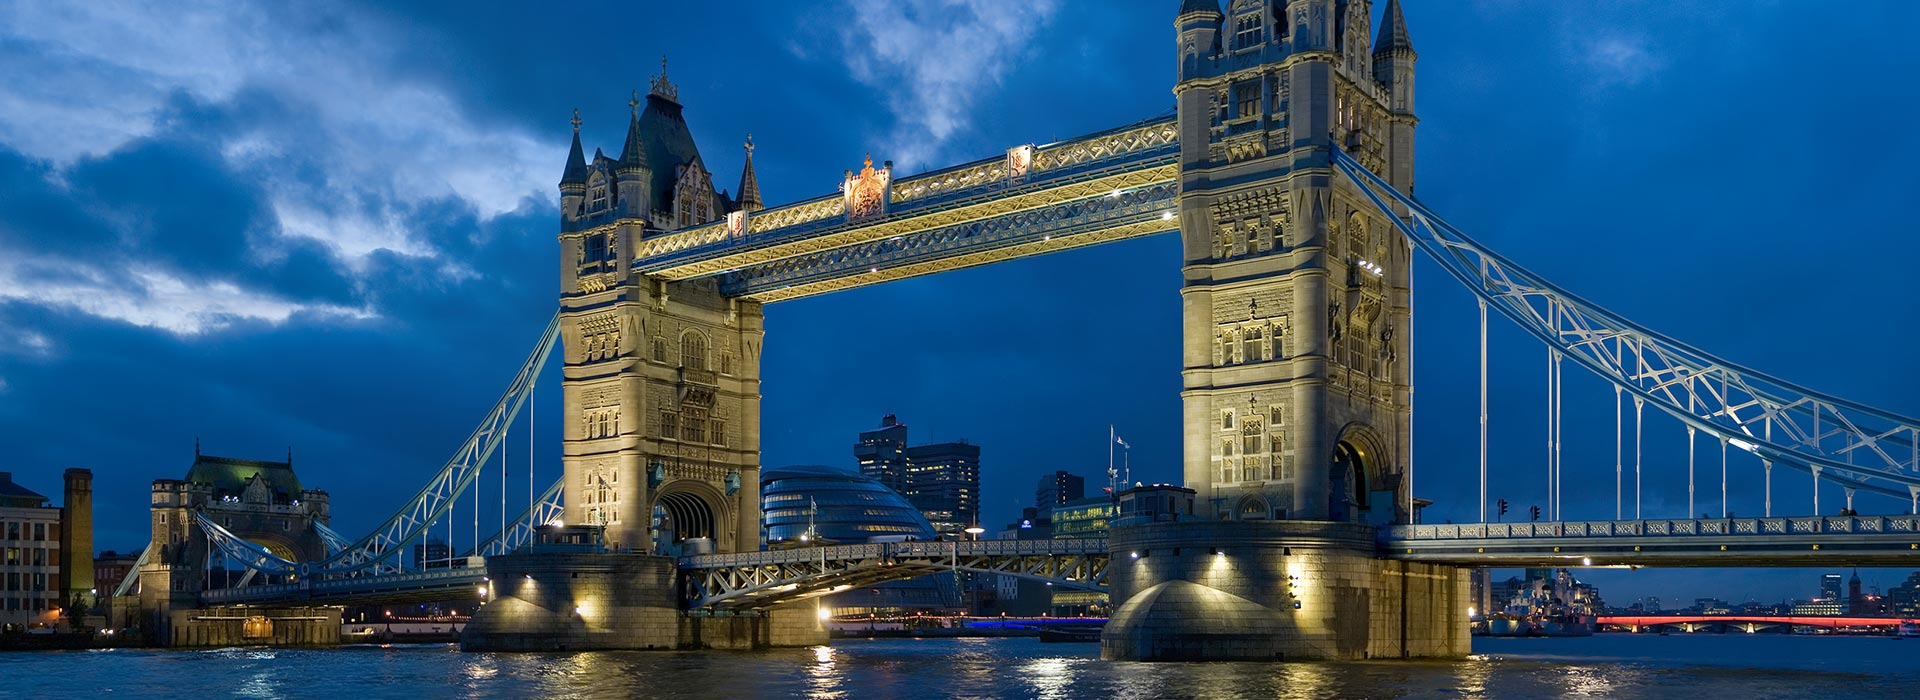 The Tower Bridge of London used as a slideshow picture.